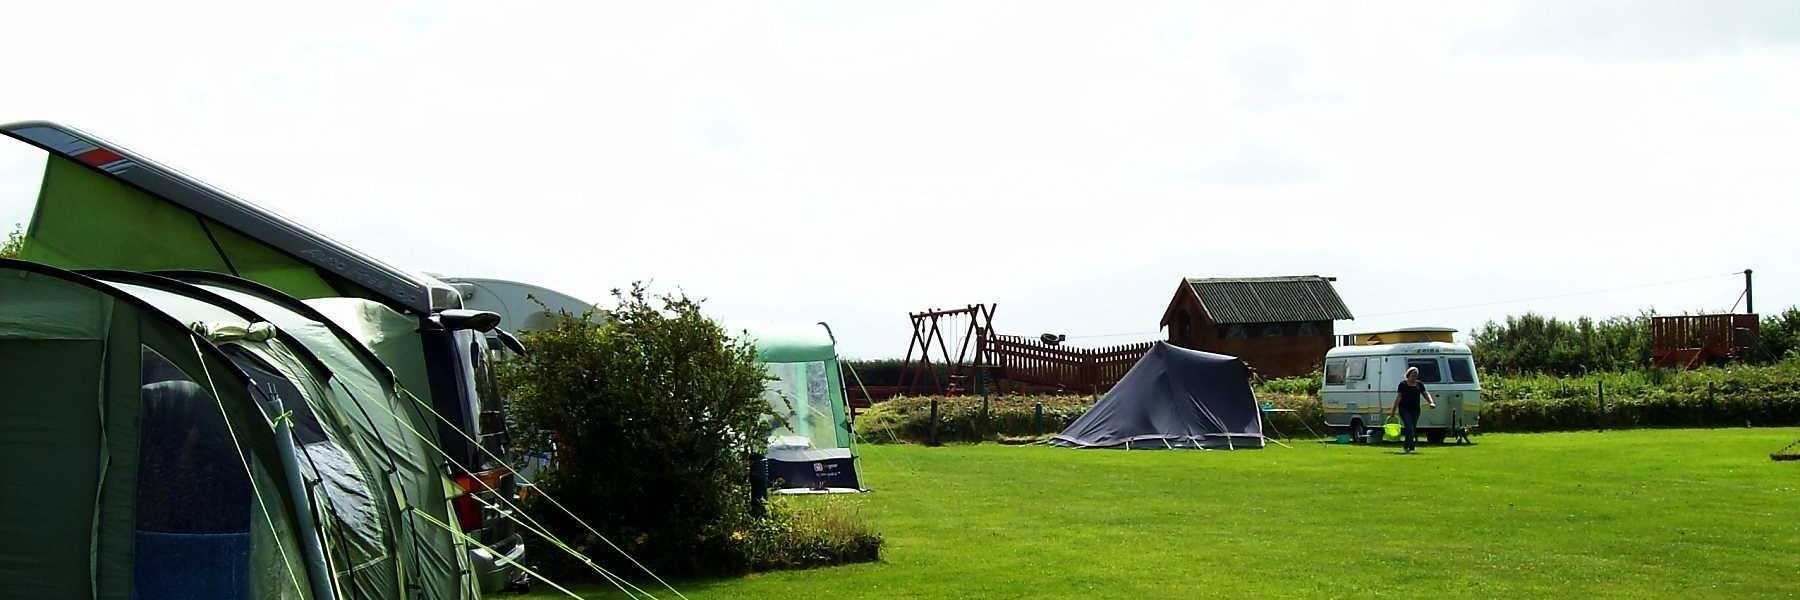 Edmore Park for tents and caravans in Beautiful Cornwall